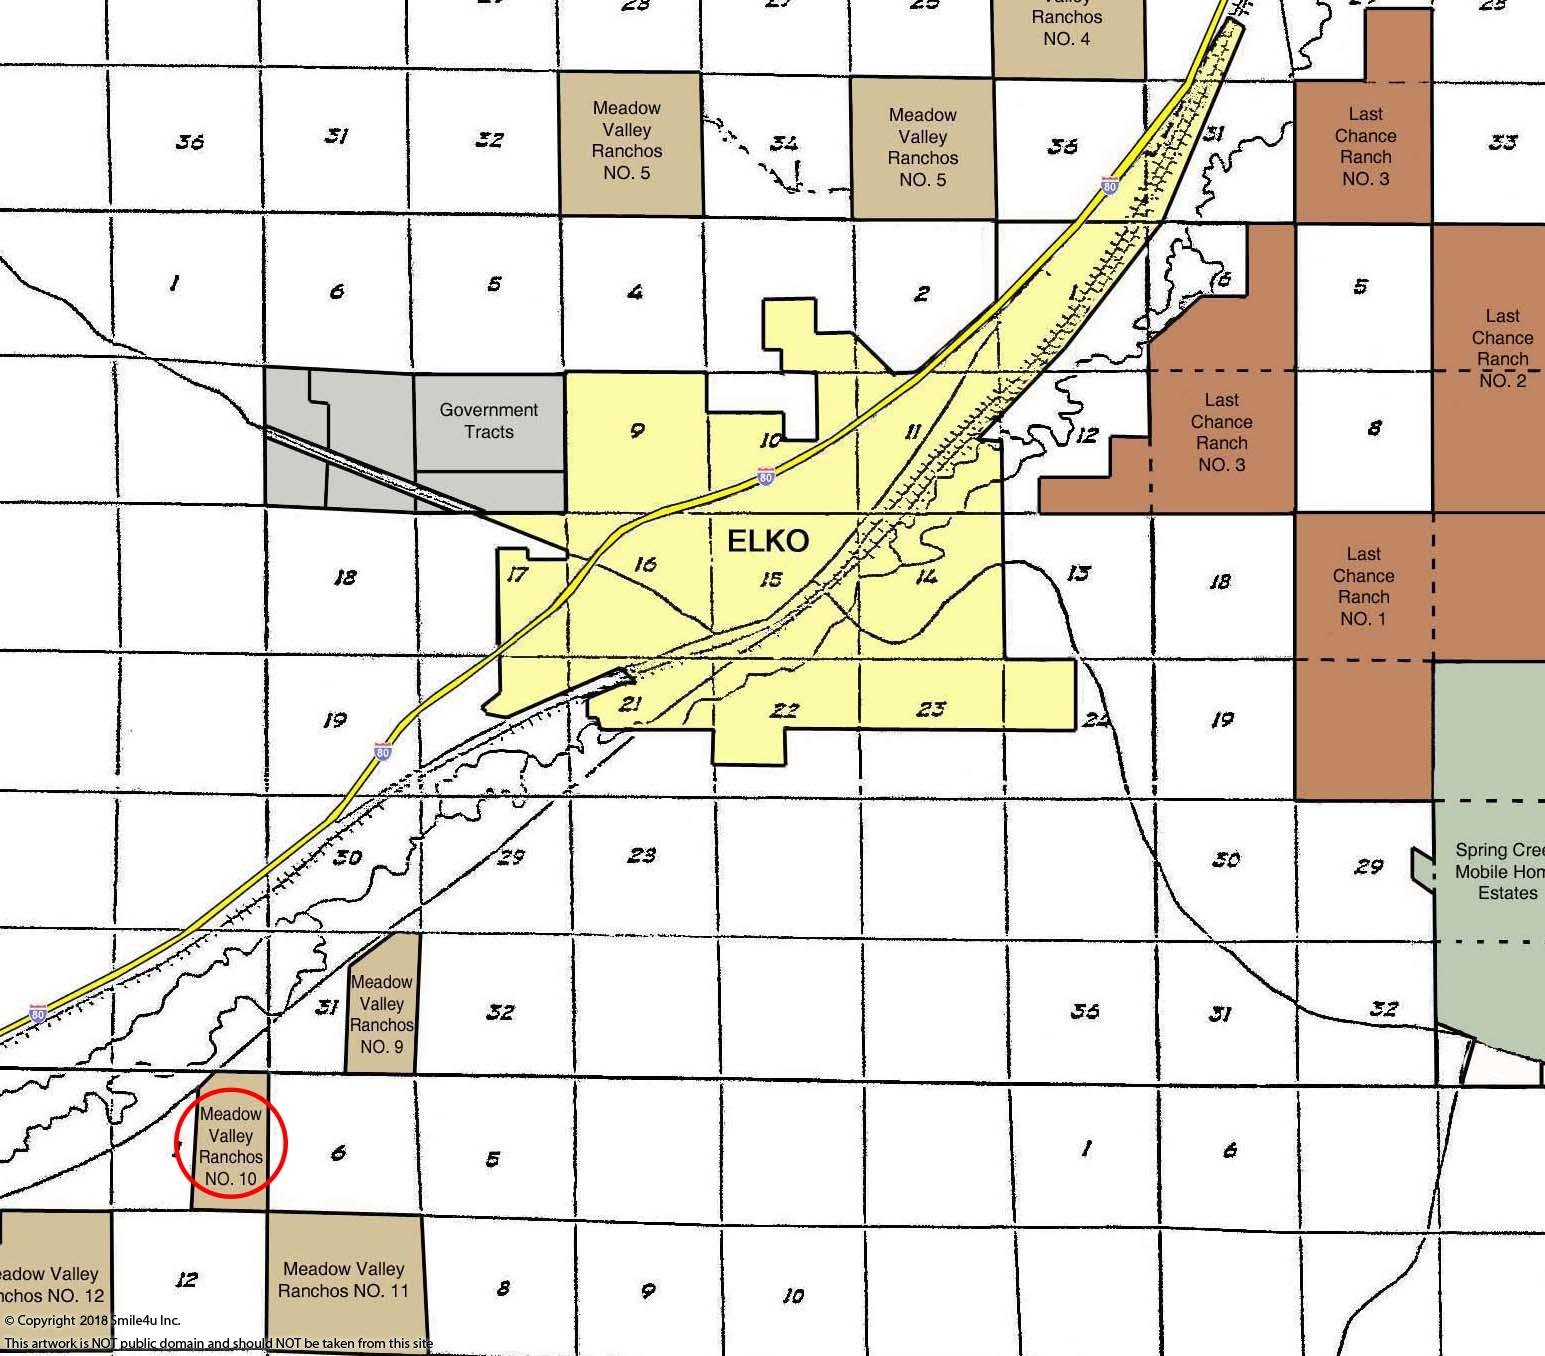 118895_watermarked_Color- Elko - T & R, Section, Subdivision Map 18x24.jpg